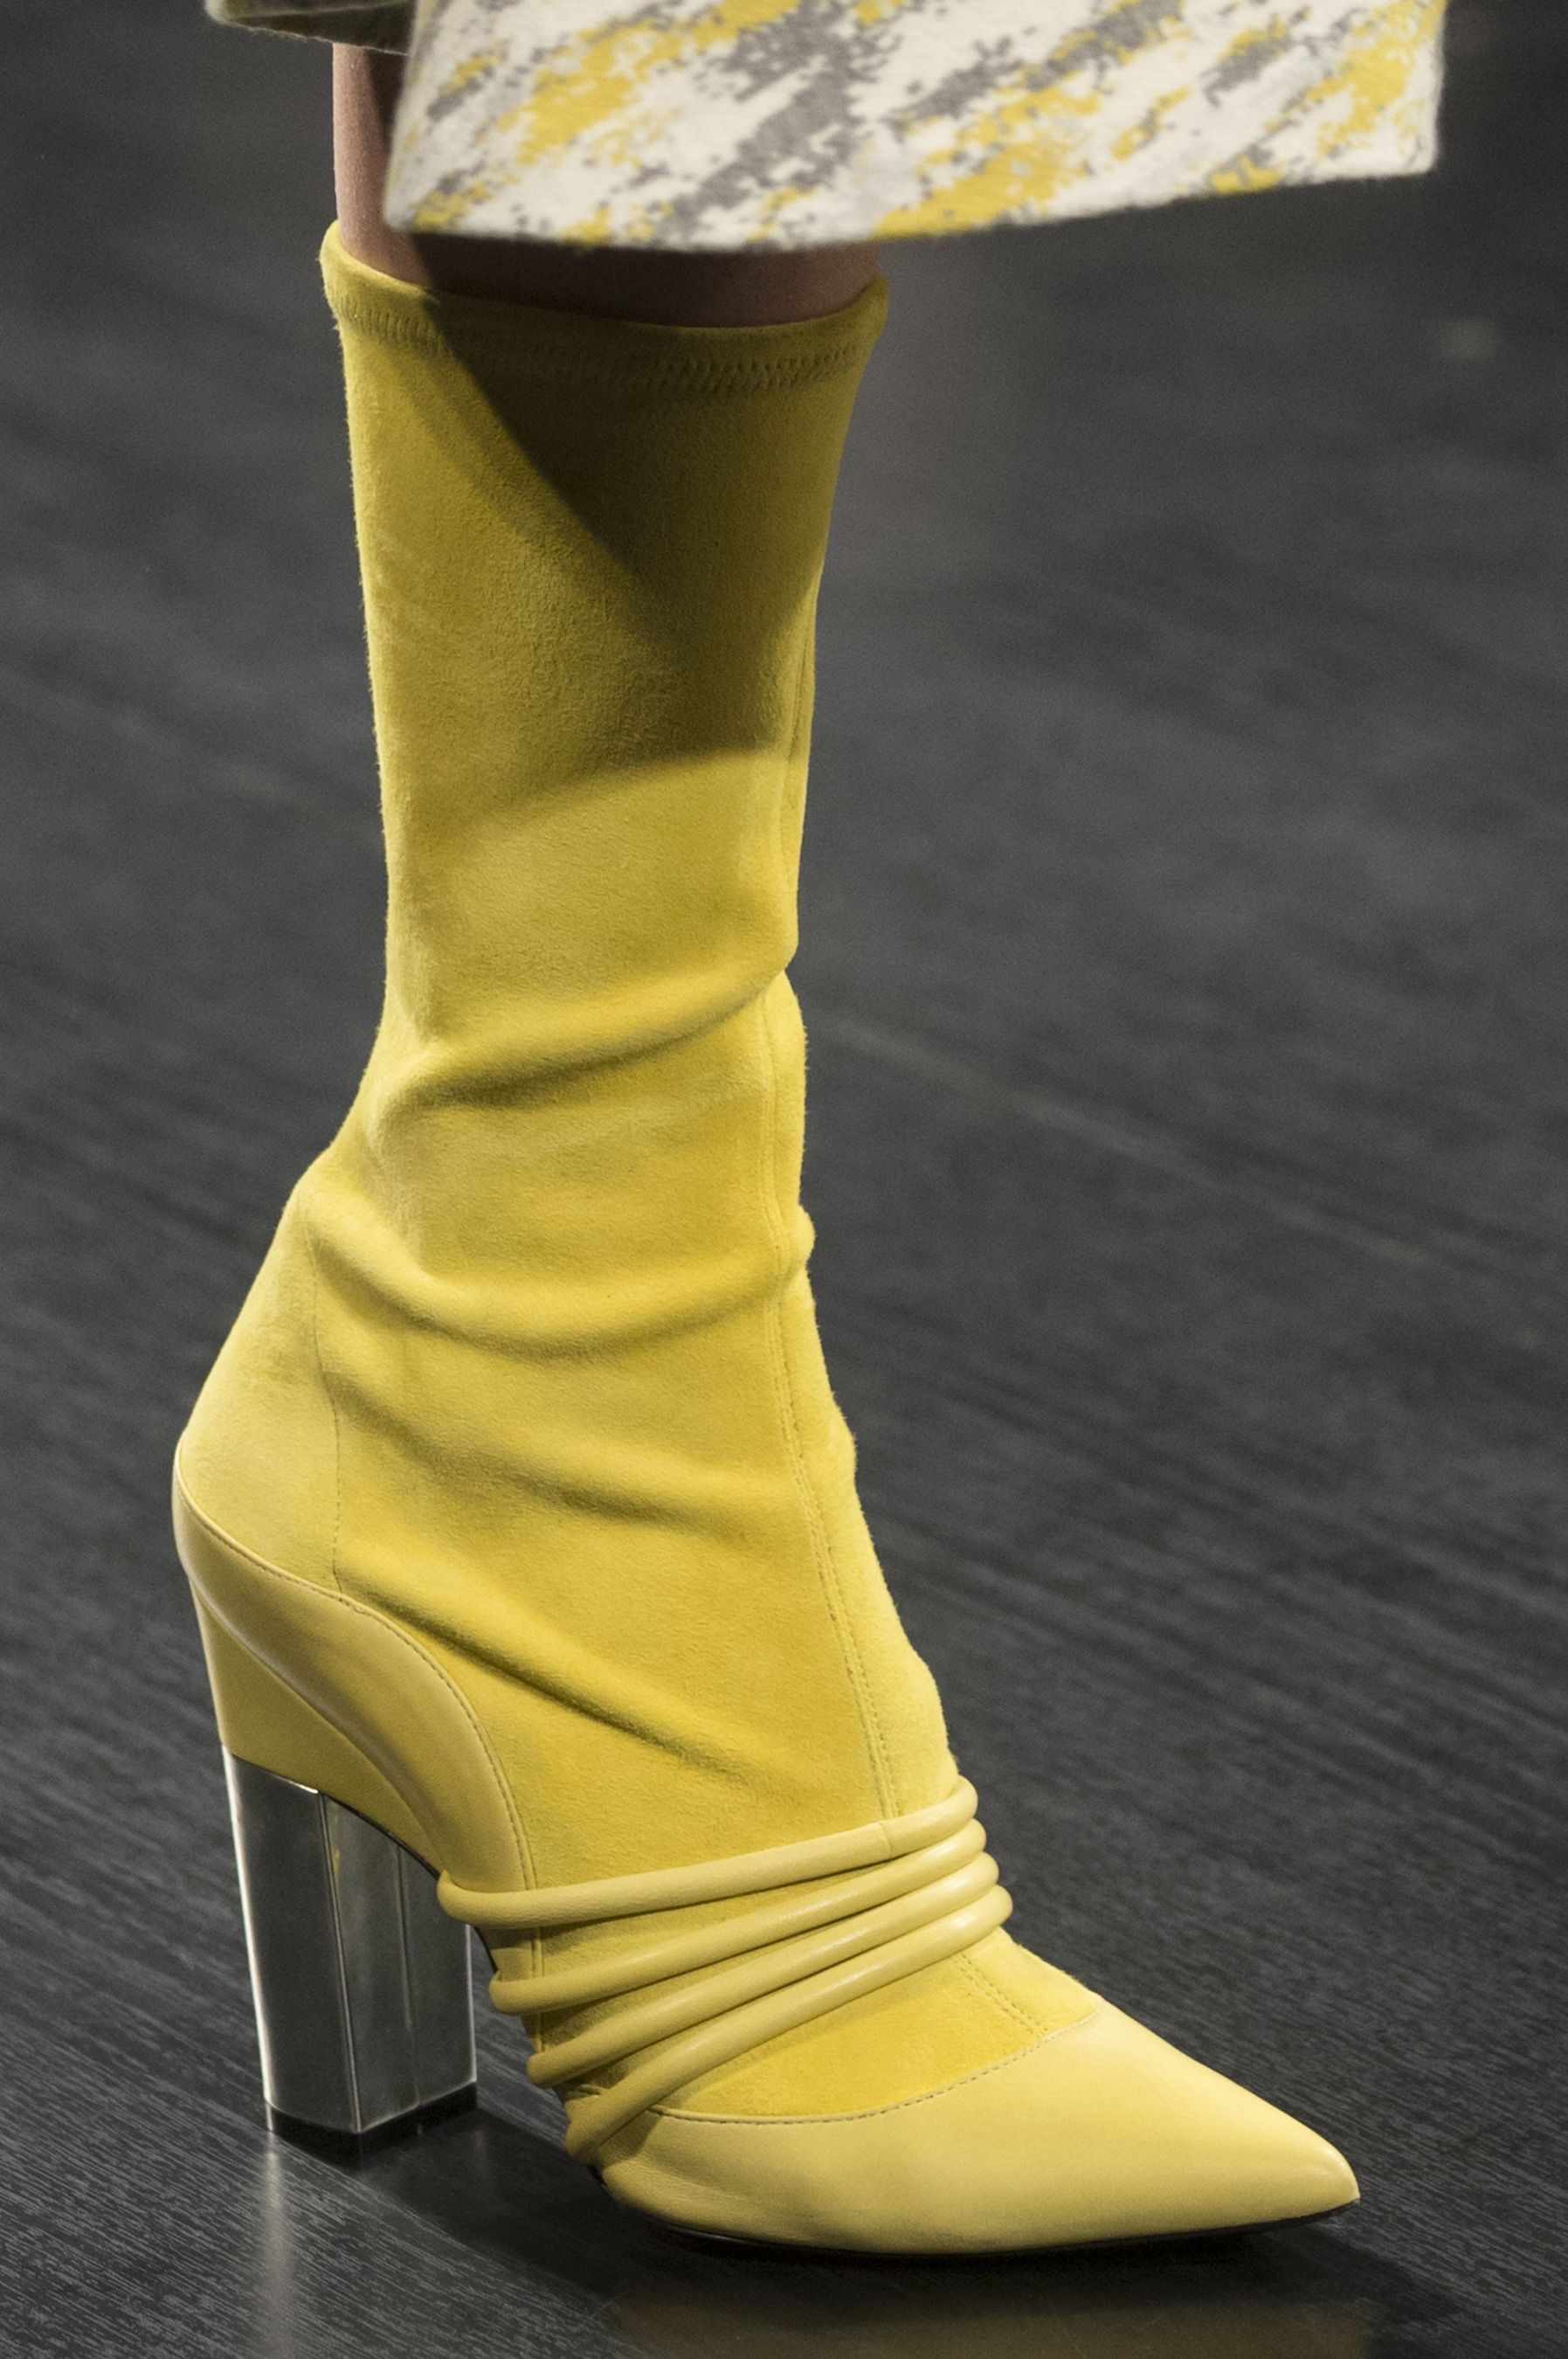 Prabal Gurung Fall 2017 Fashion Show Details - The Impression